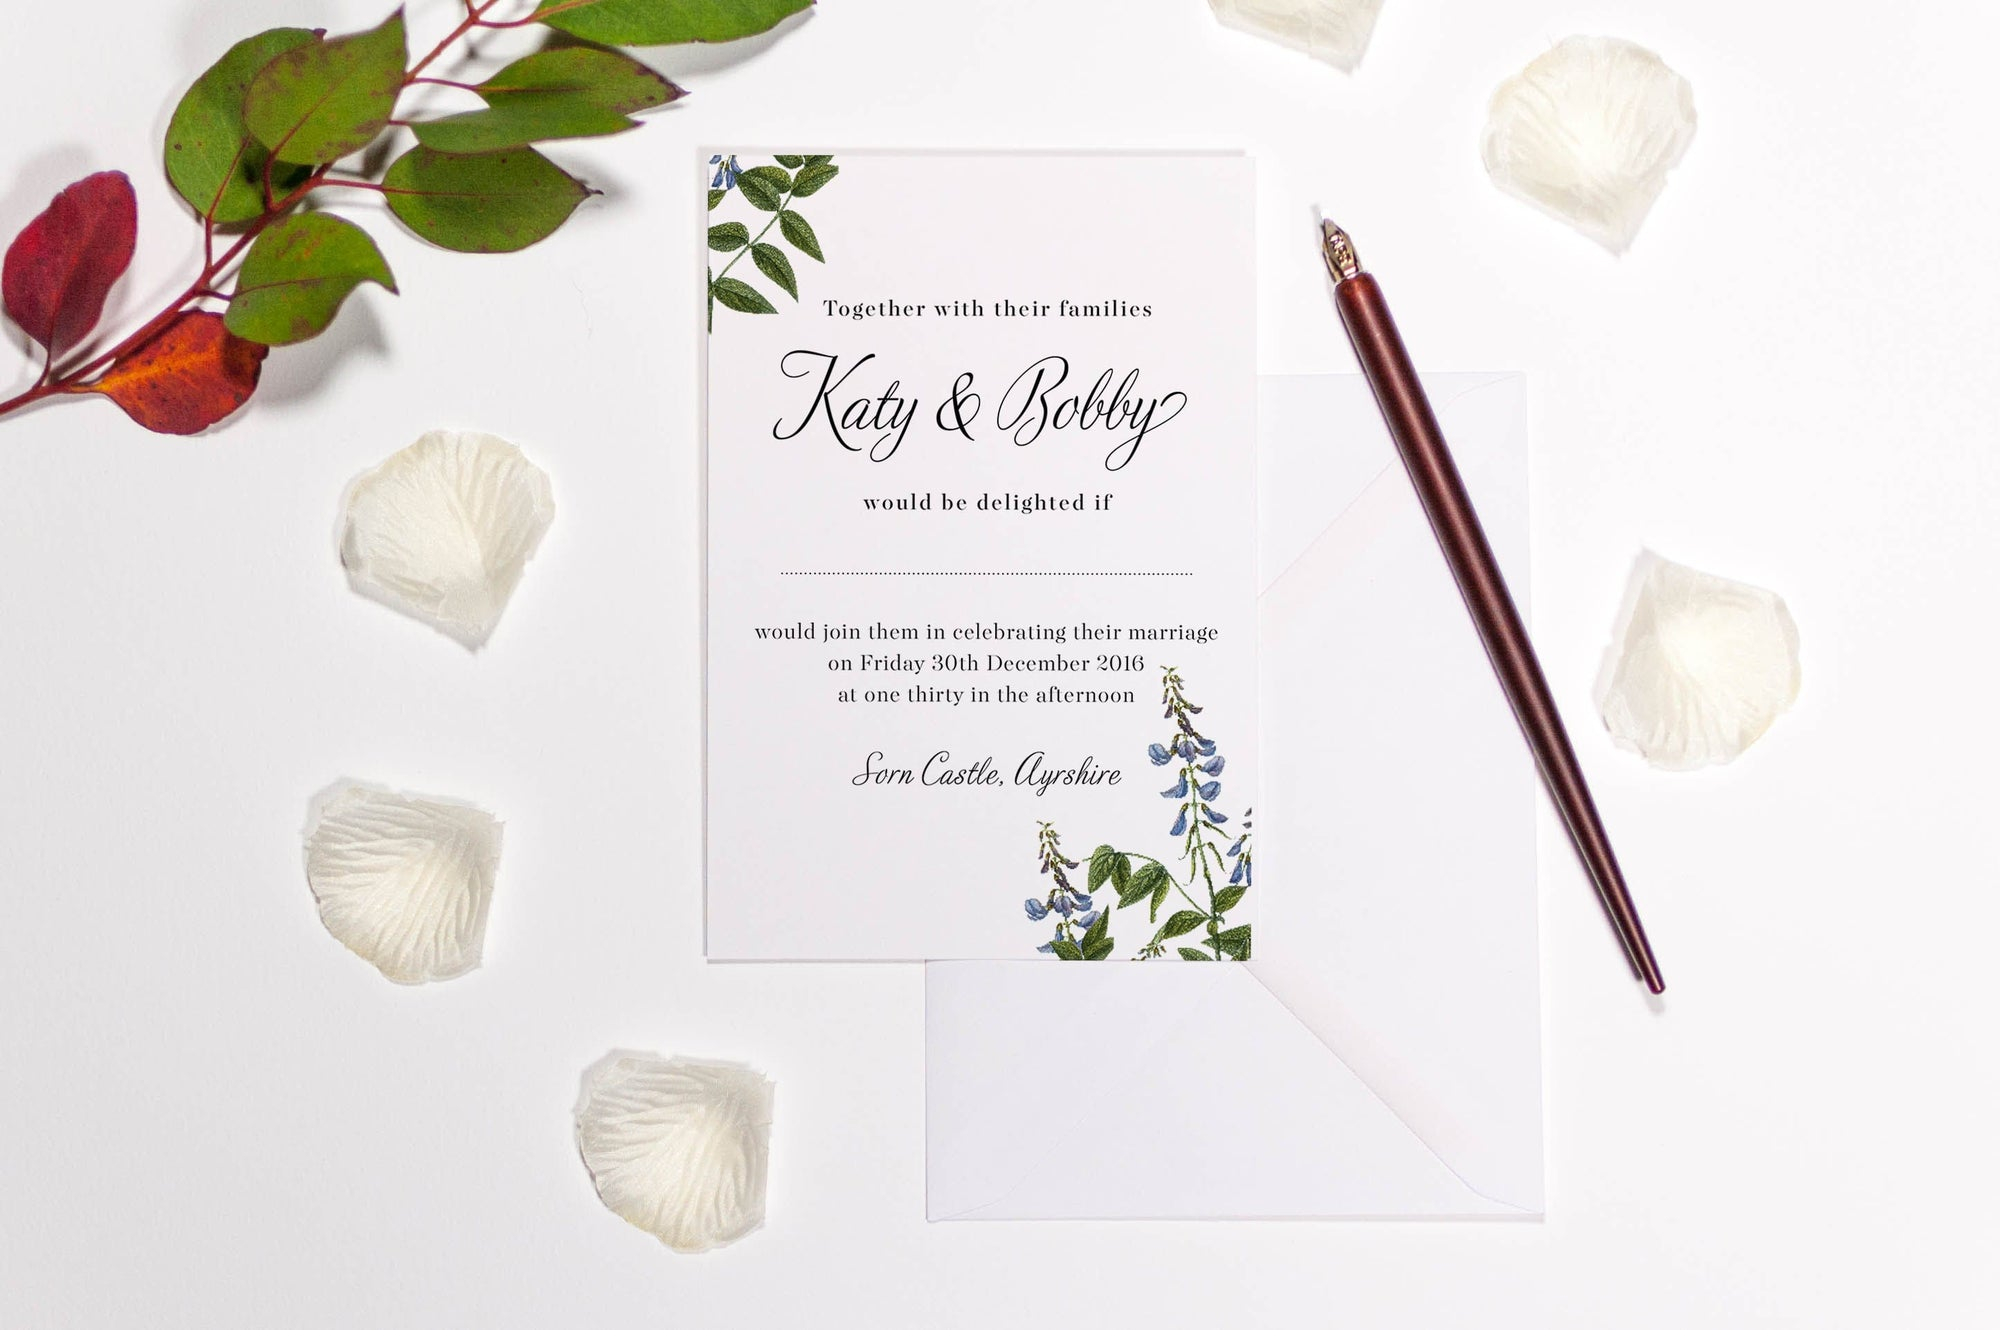 luxuryweddinginvitationsbycombossa HD Printed Wedding Invitations Botanic Bluebells Wedding Invitation, HD Digital Print